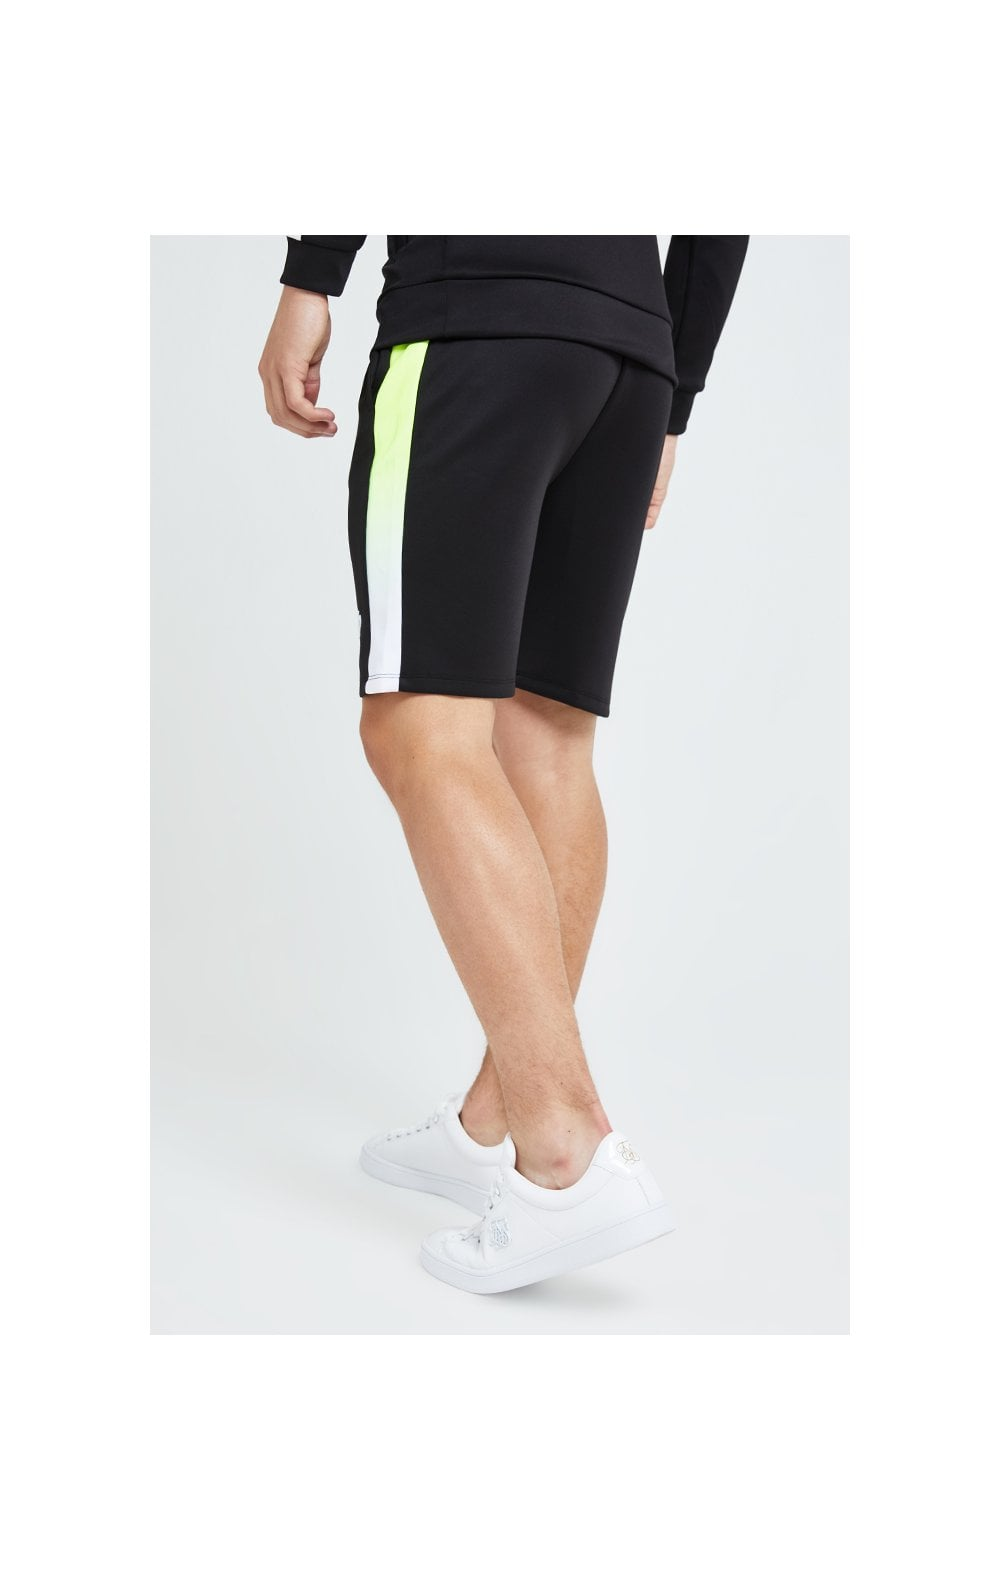 Load image into Gallery viewer, Illusive London Fade Panel Shorts - Black Neon (2)